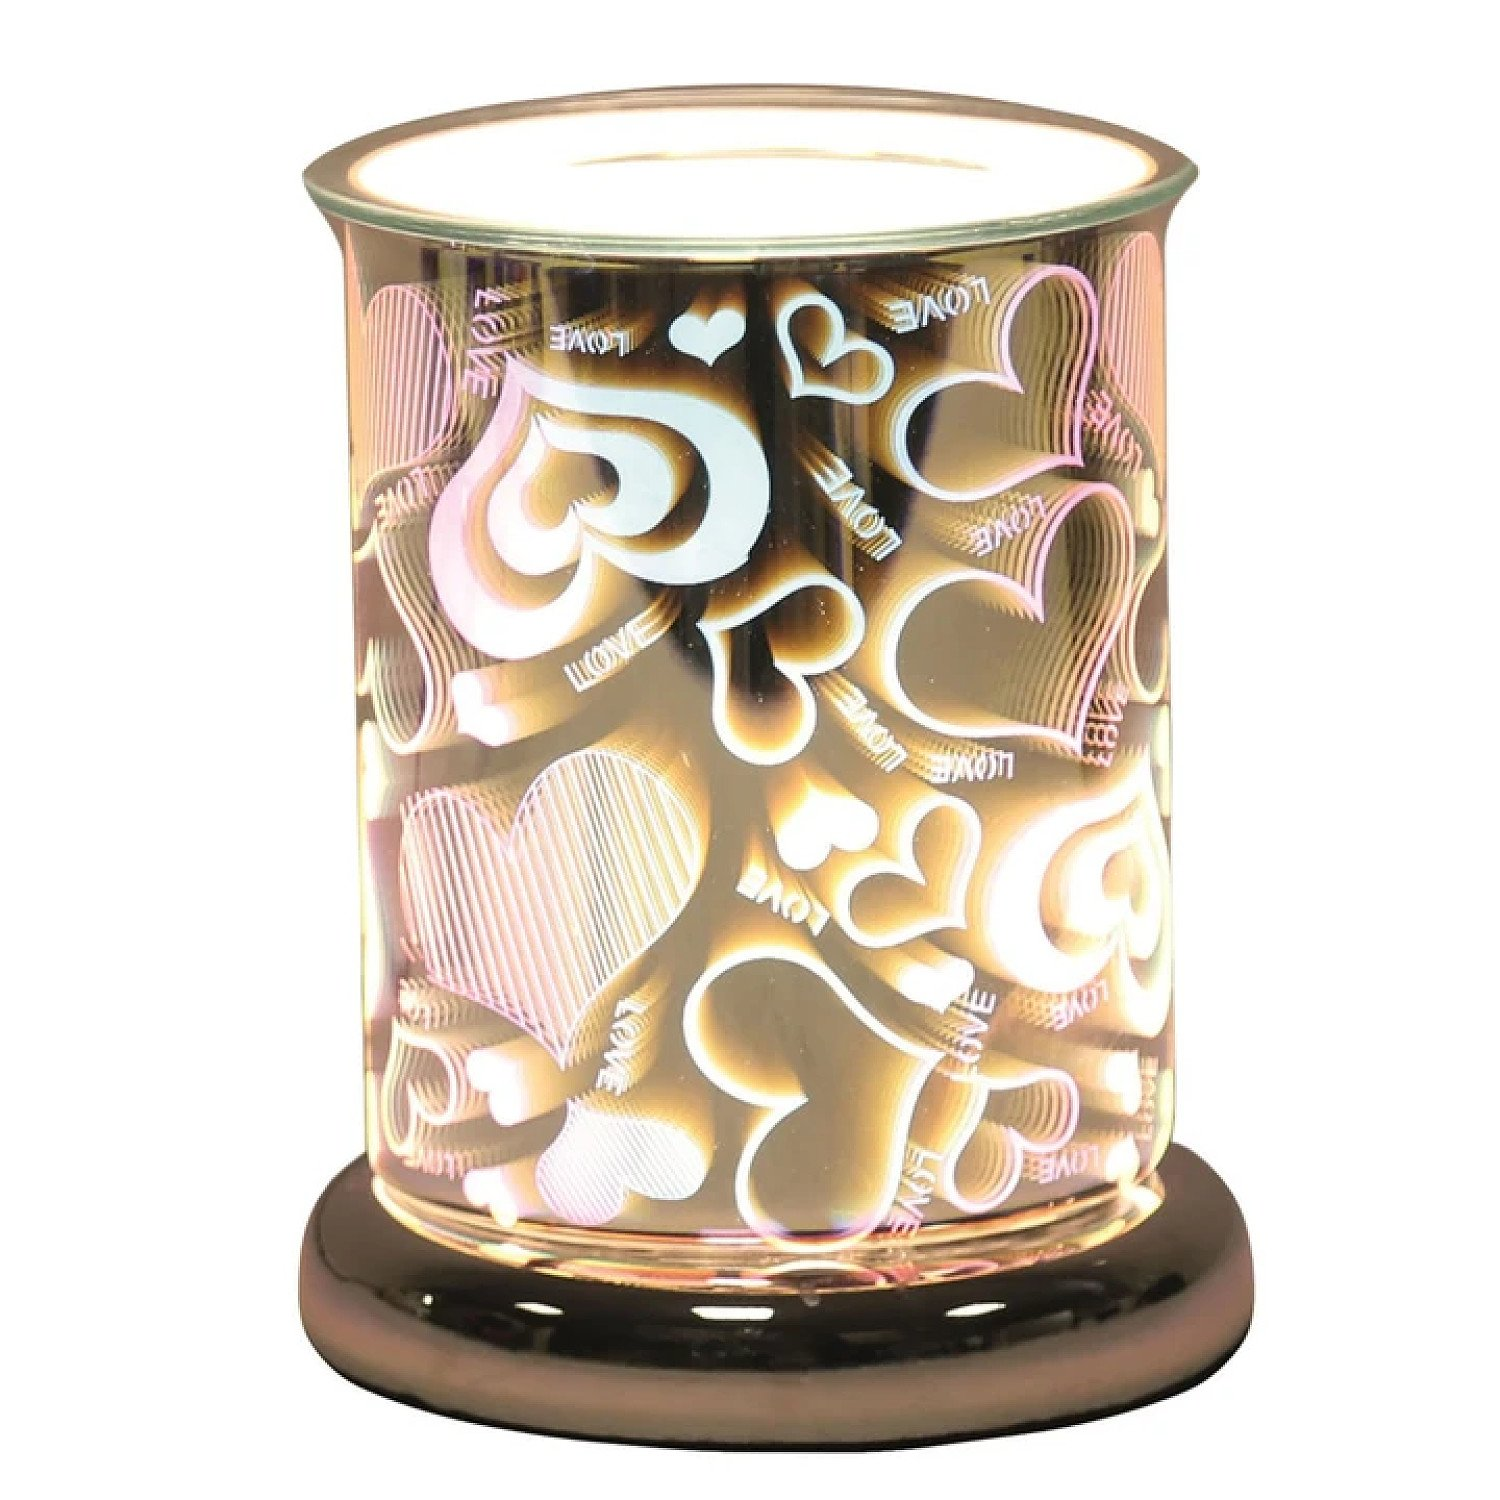 (Love - Cylinder) Oval 3D Lights Scented Aroma Wax Burner Electric Touch Lamp